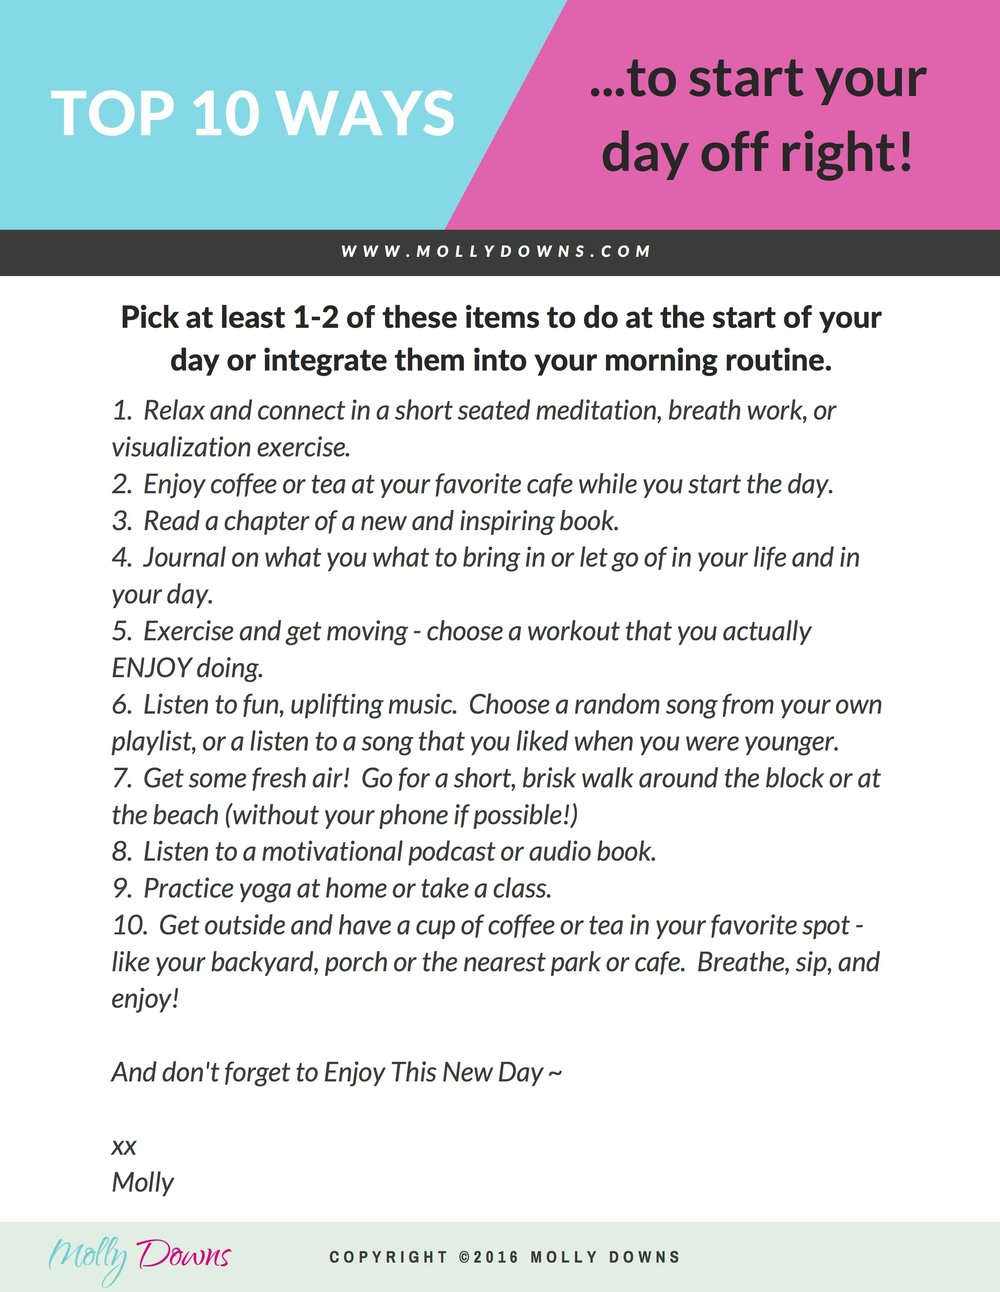 TOP_10_TIP_SHEET_TO_START_YOUR_DAY_OFF_RIGHT_(3).jpg